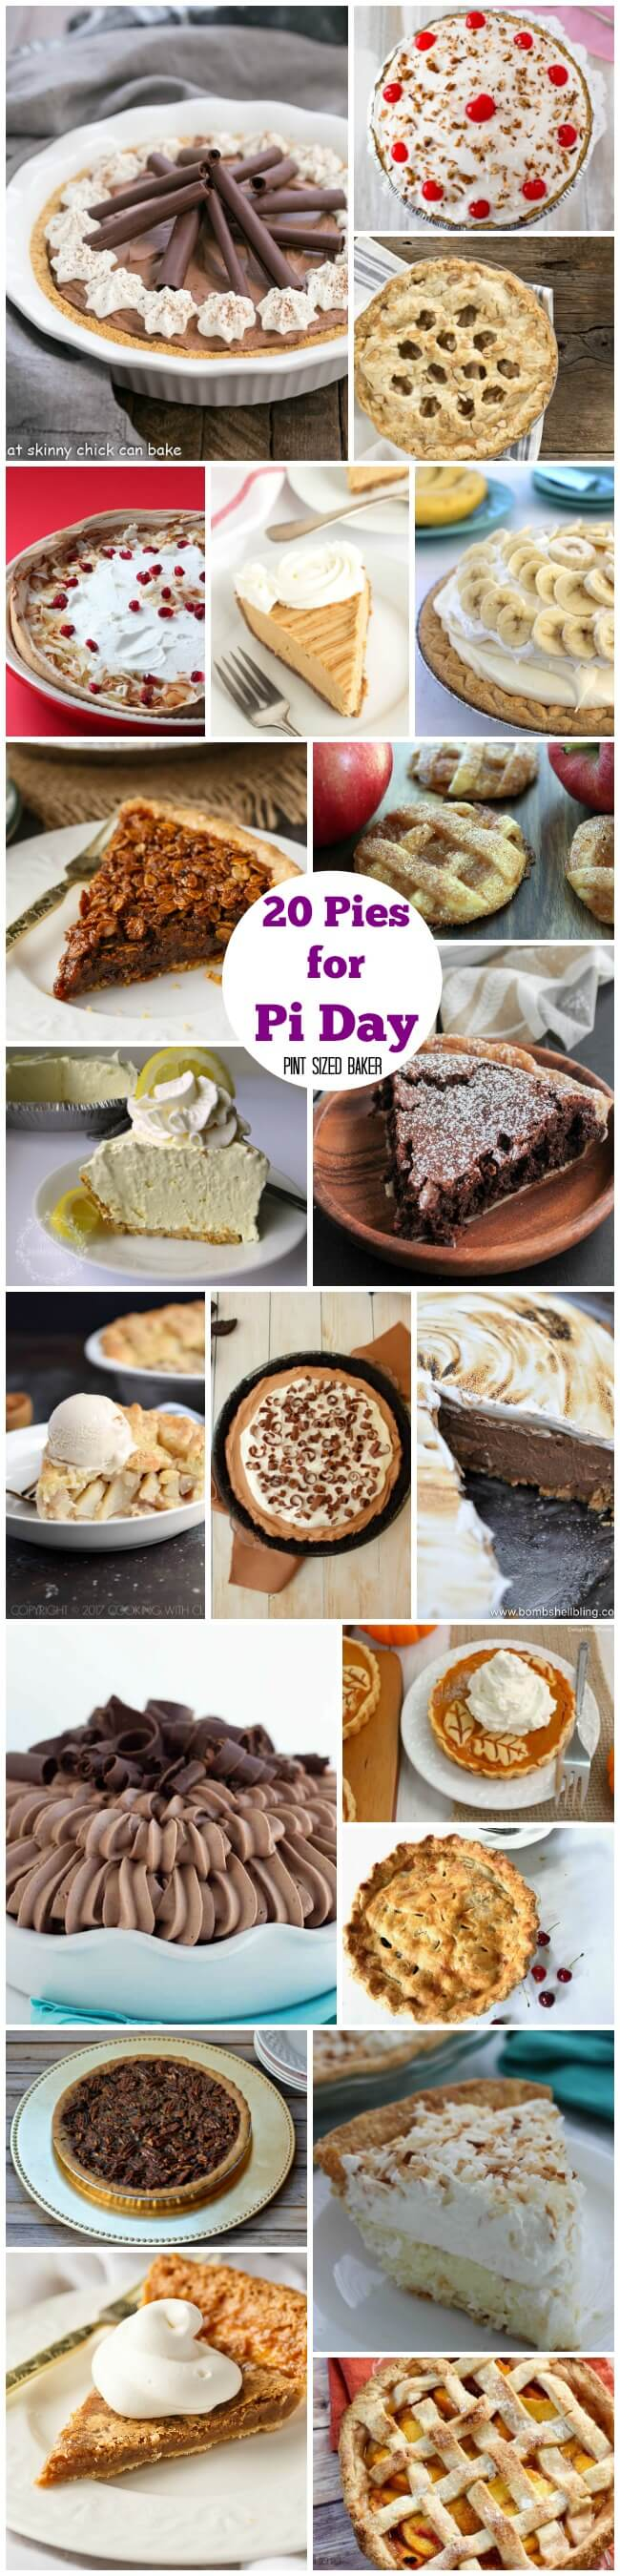 Everyone loves a slice of pie! Make it a la mode or serve it with whipped cream, here's 20 Pies for Pi Day that you can bake with the kids or surprise the family with. 3.14 is the perfect day to serve a homemade pie!